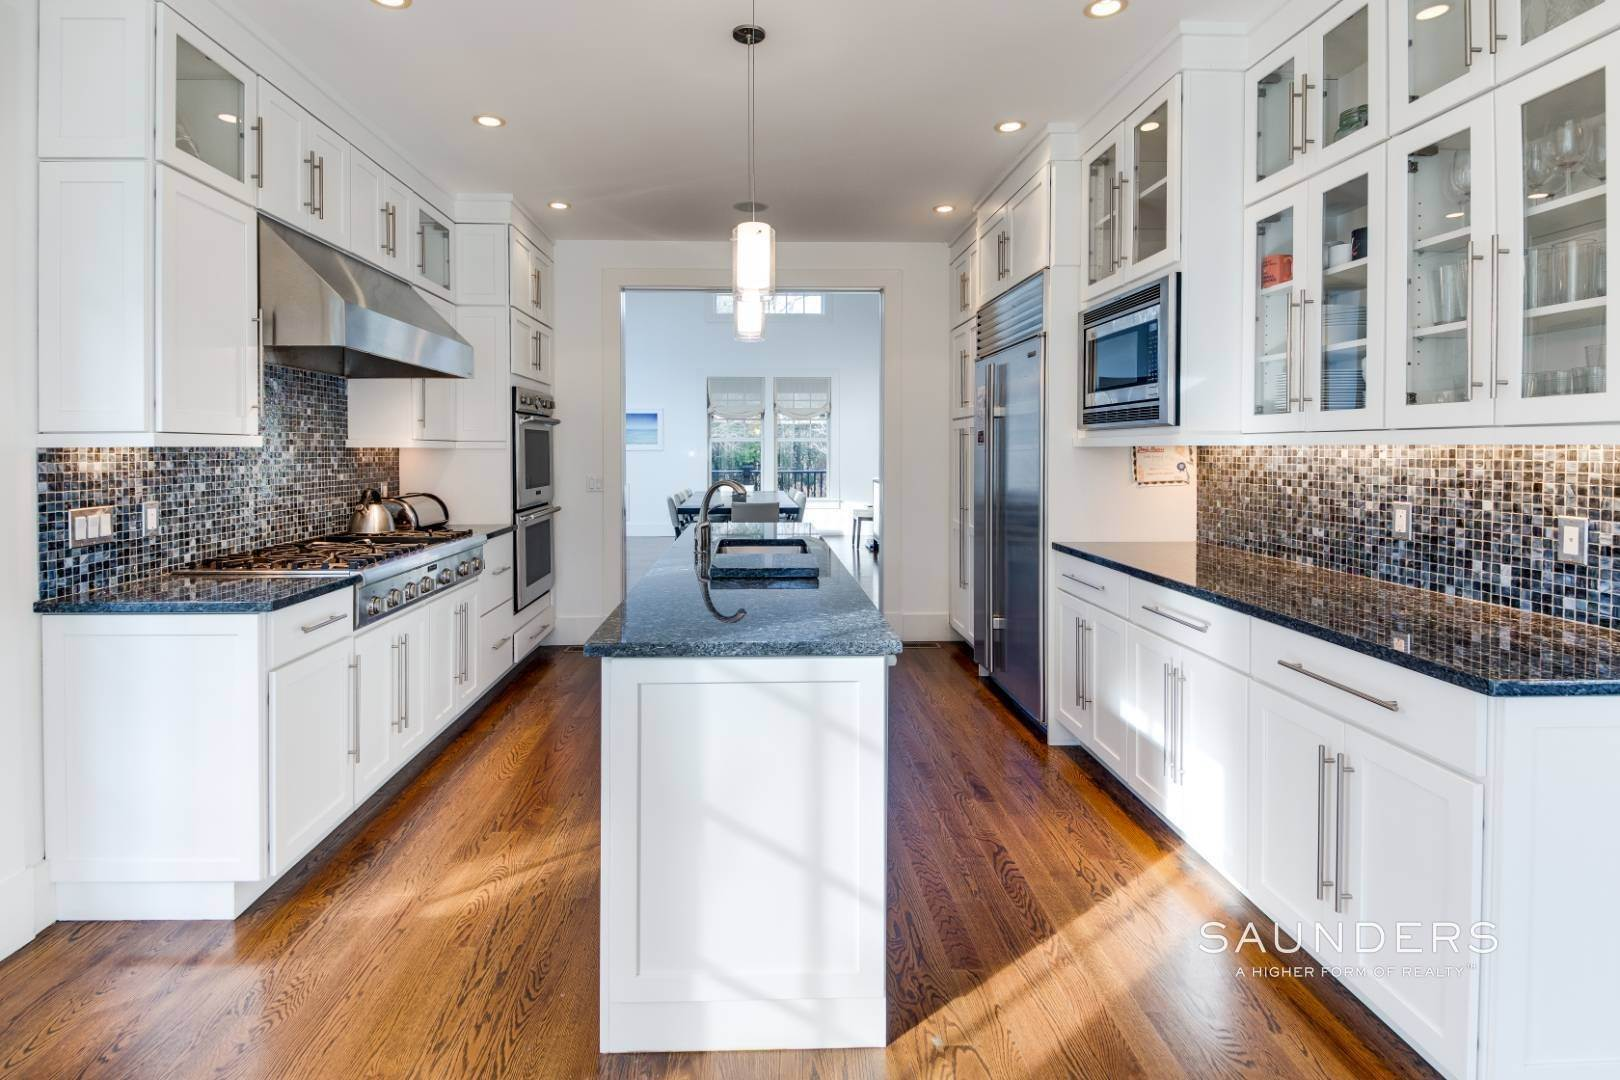 7. Single Family Homes for Sale at Wainscott South Traditional Near Beach Lane 10 Merriwood Drive, Wainscott, East Hampton Town, NY 11975